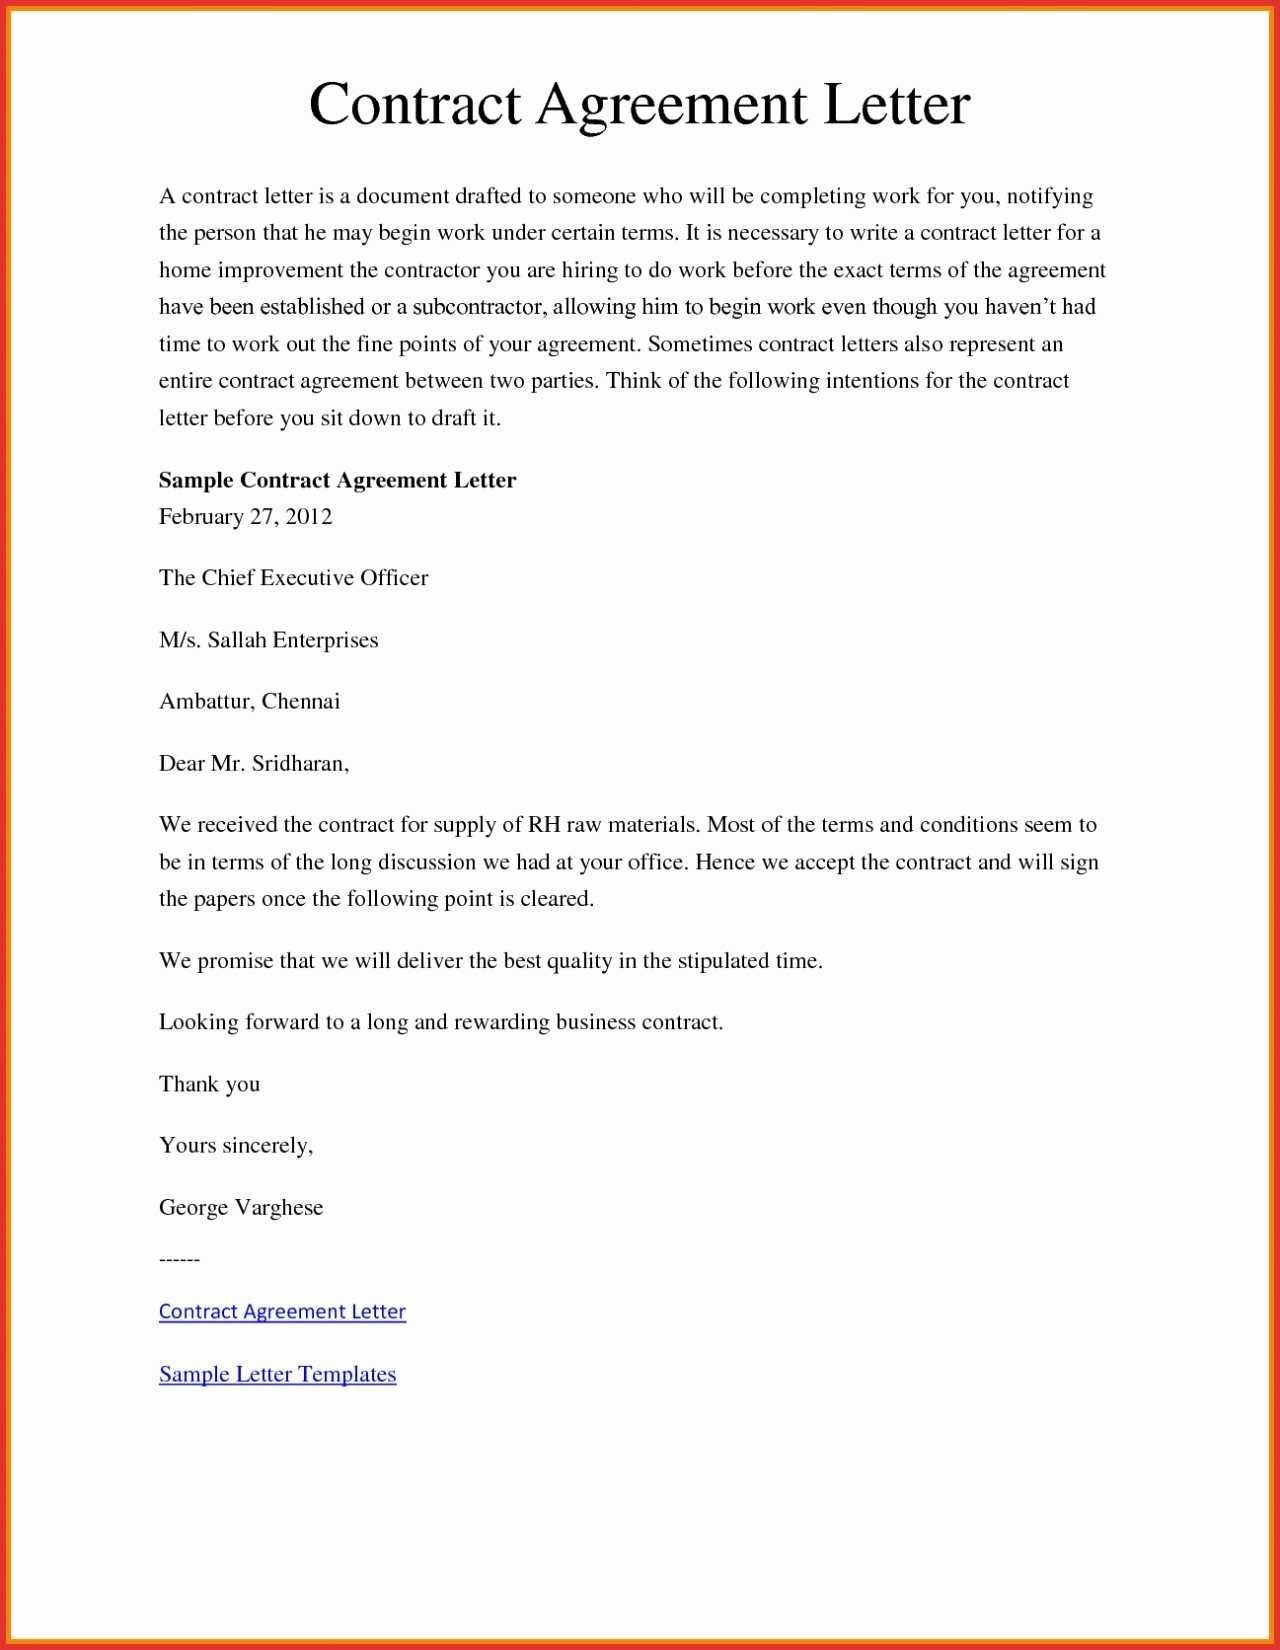 003 Incredible Non Compete Agreement Template South Africa High Resolution Full